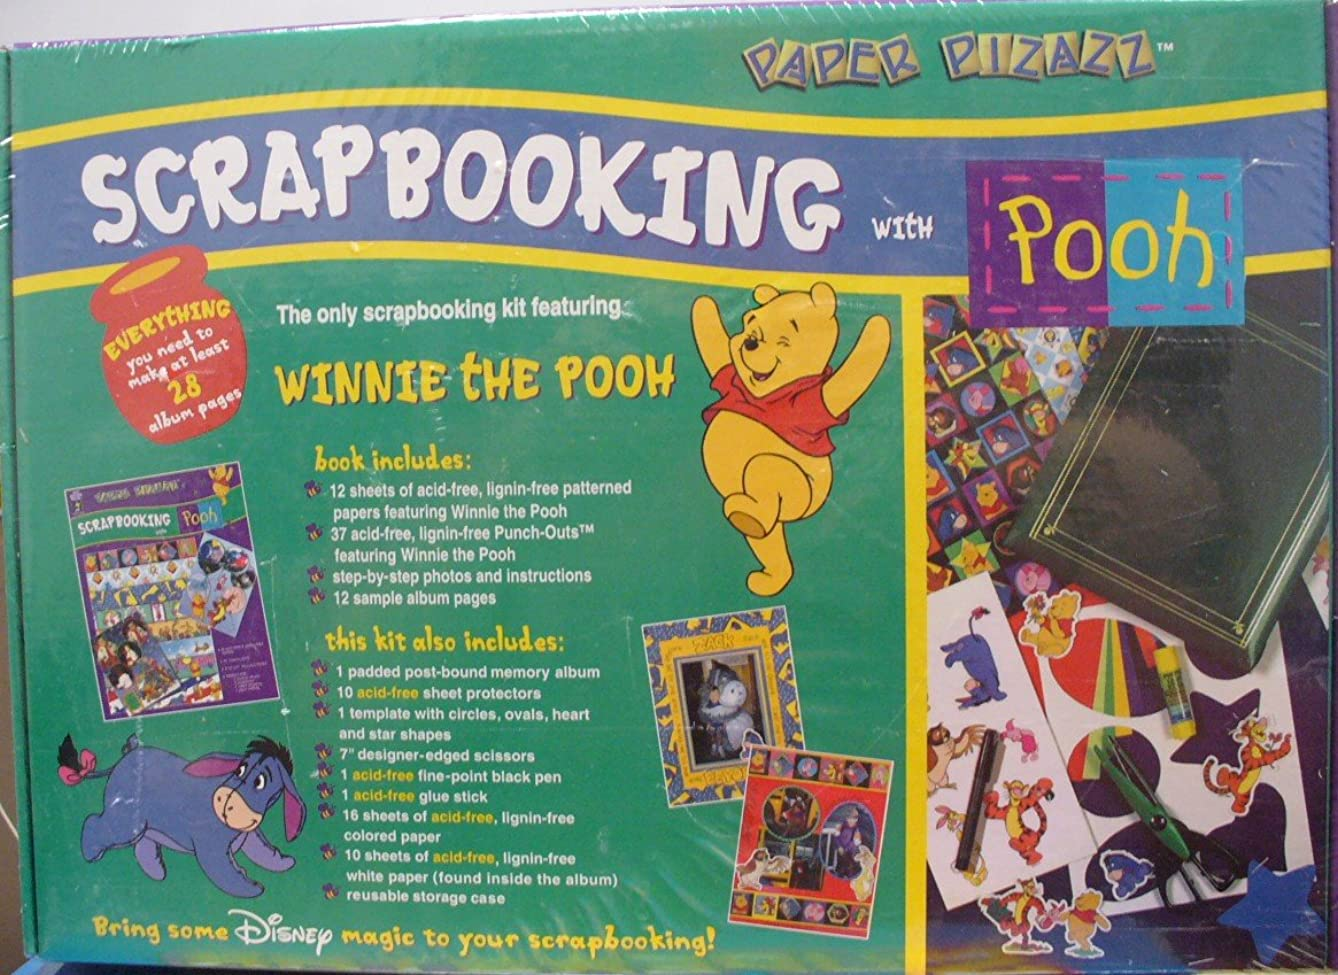 Scrapbooking with Pooh